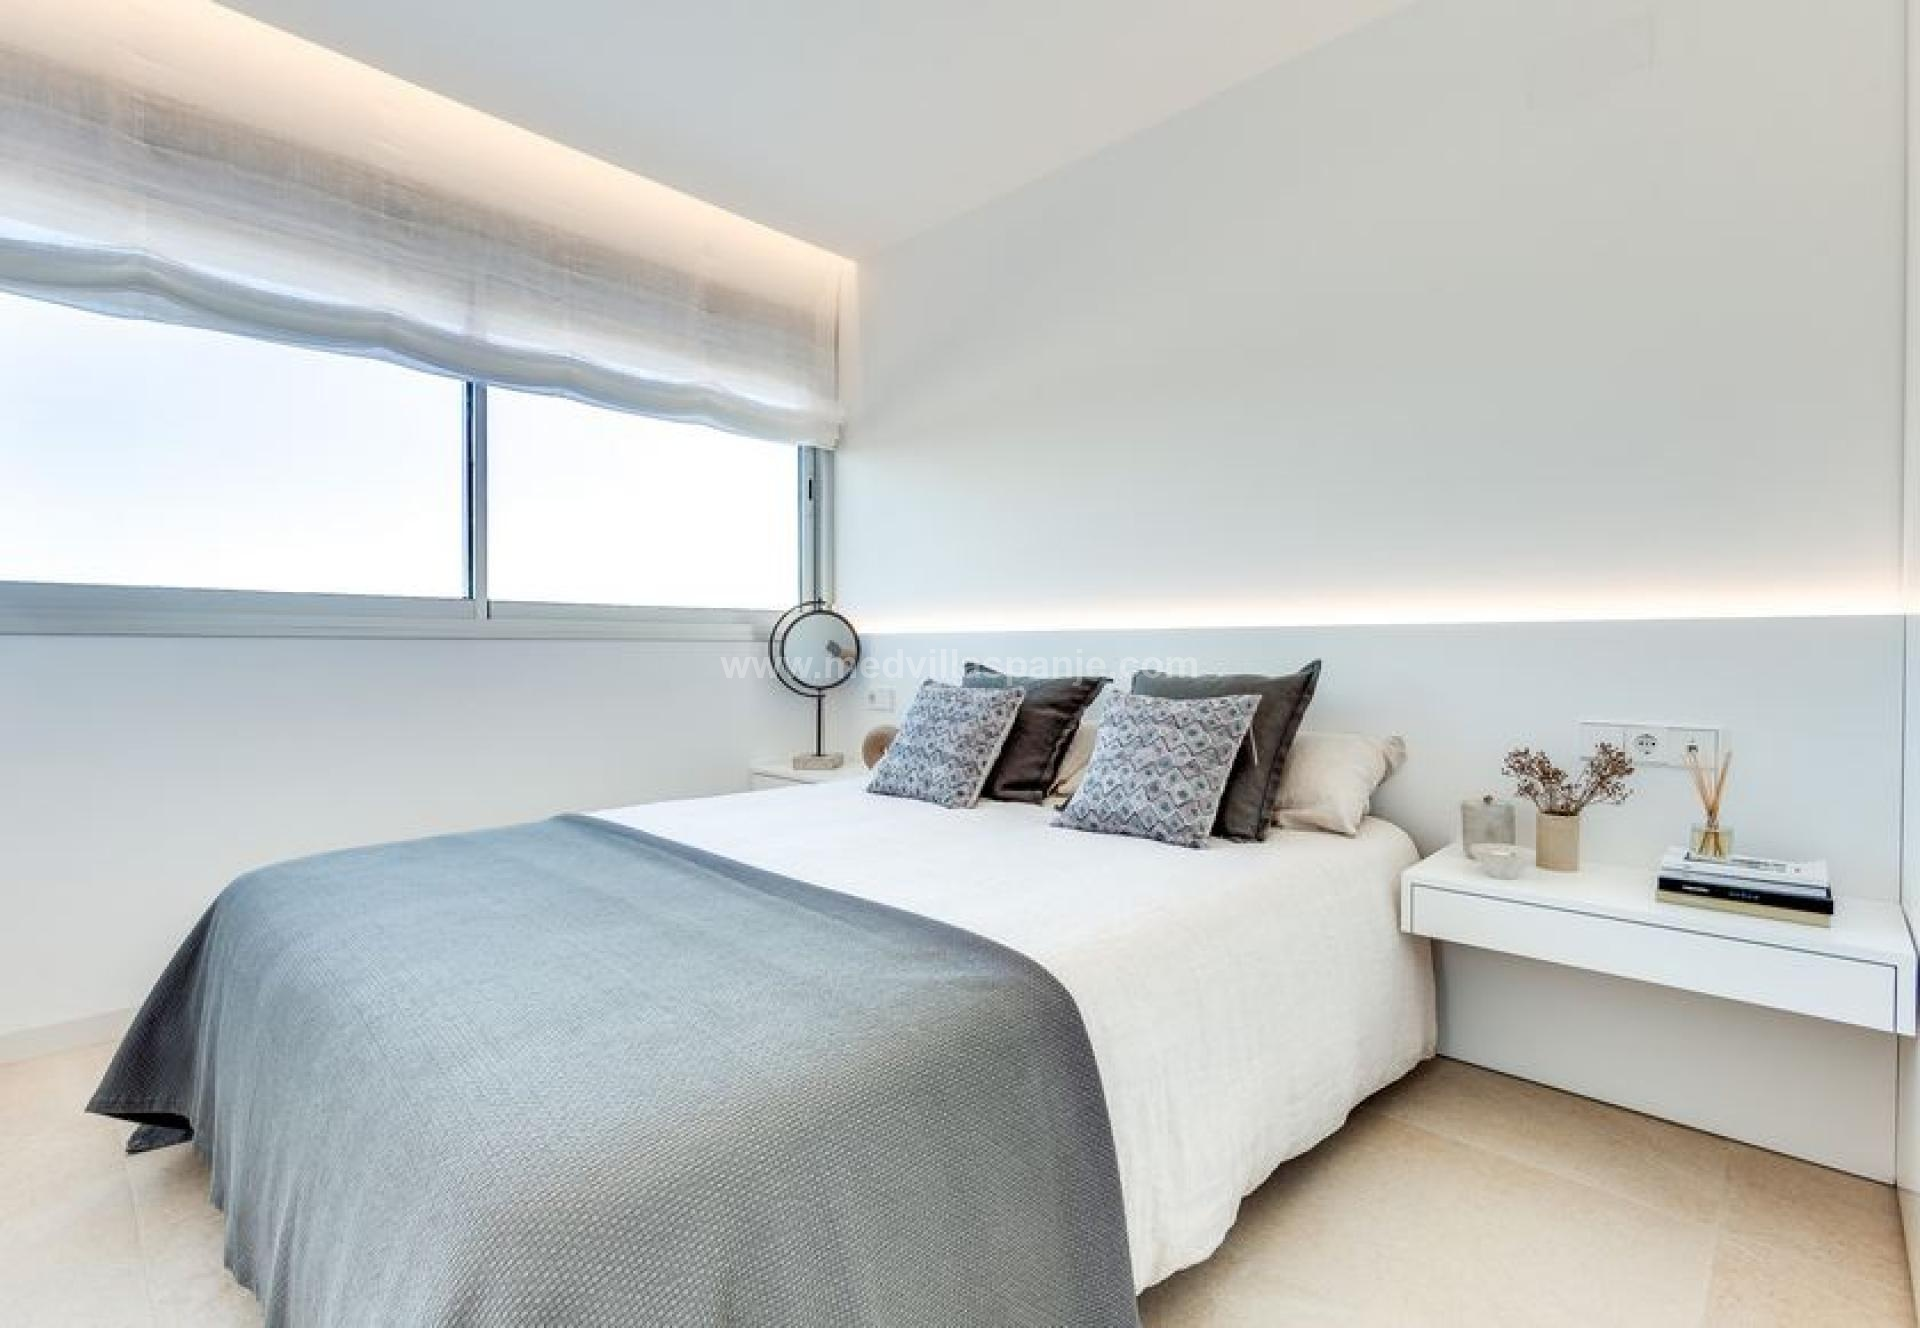 Luxury new apartments Orihuela Costa, Alicante in Medvilla Spanje